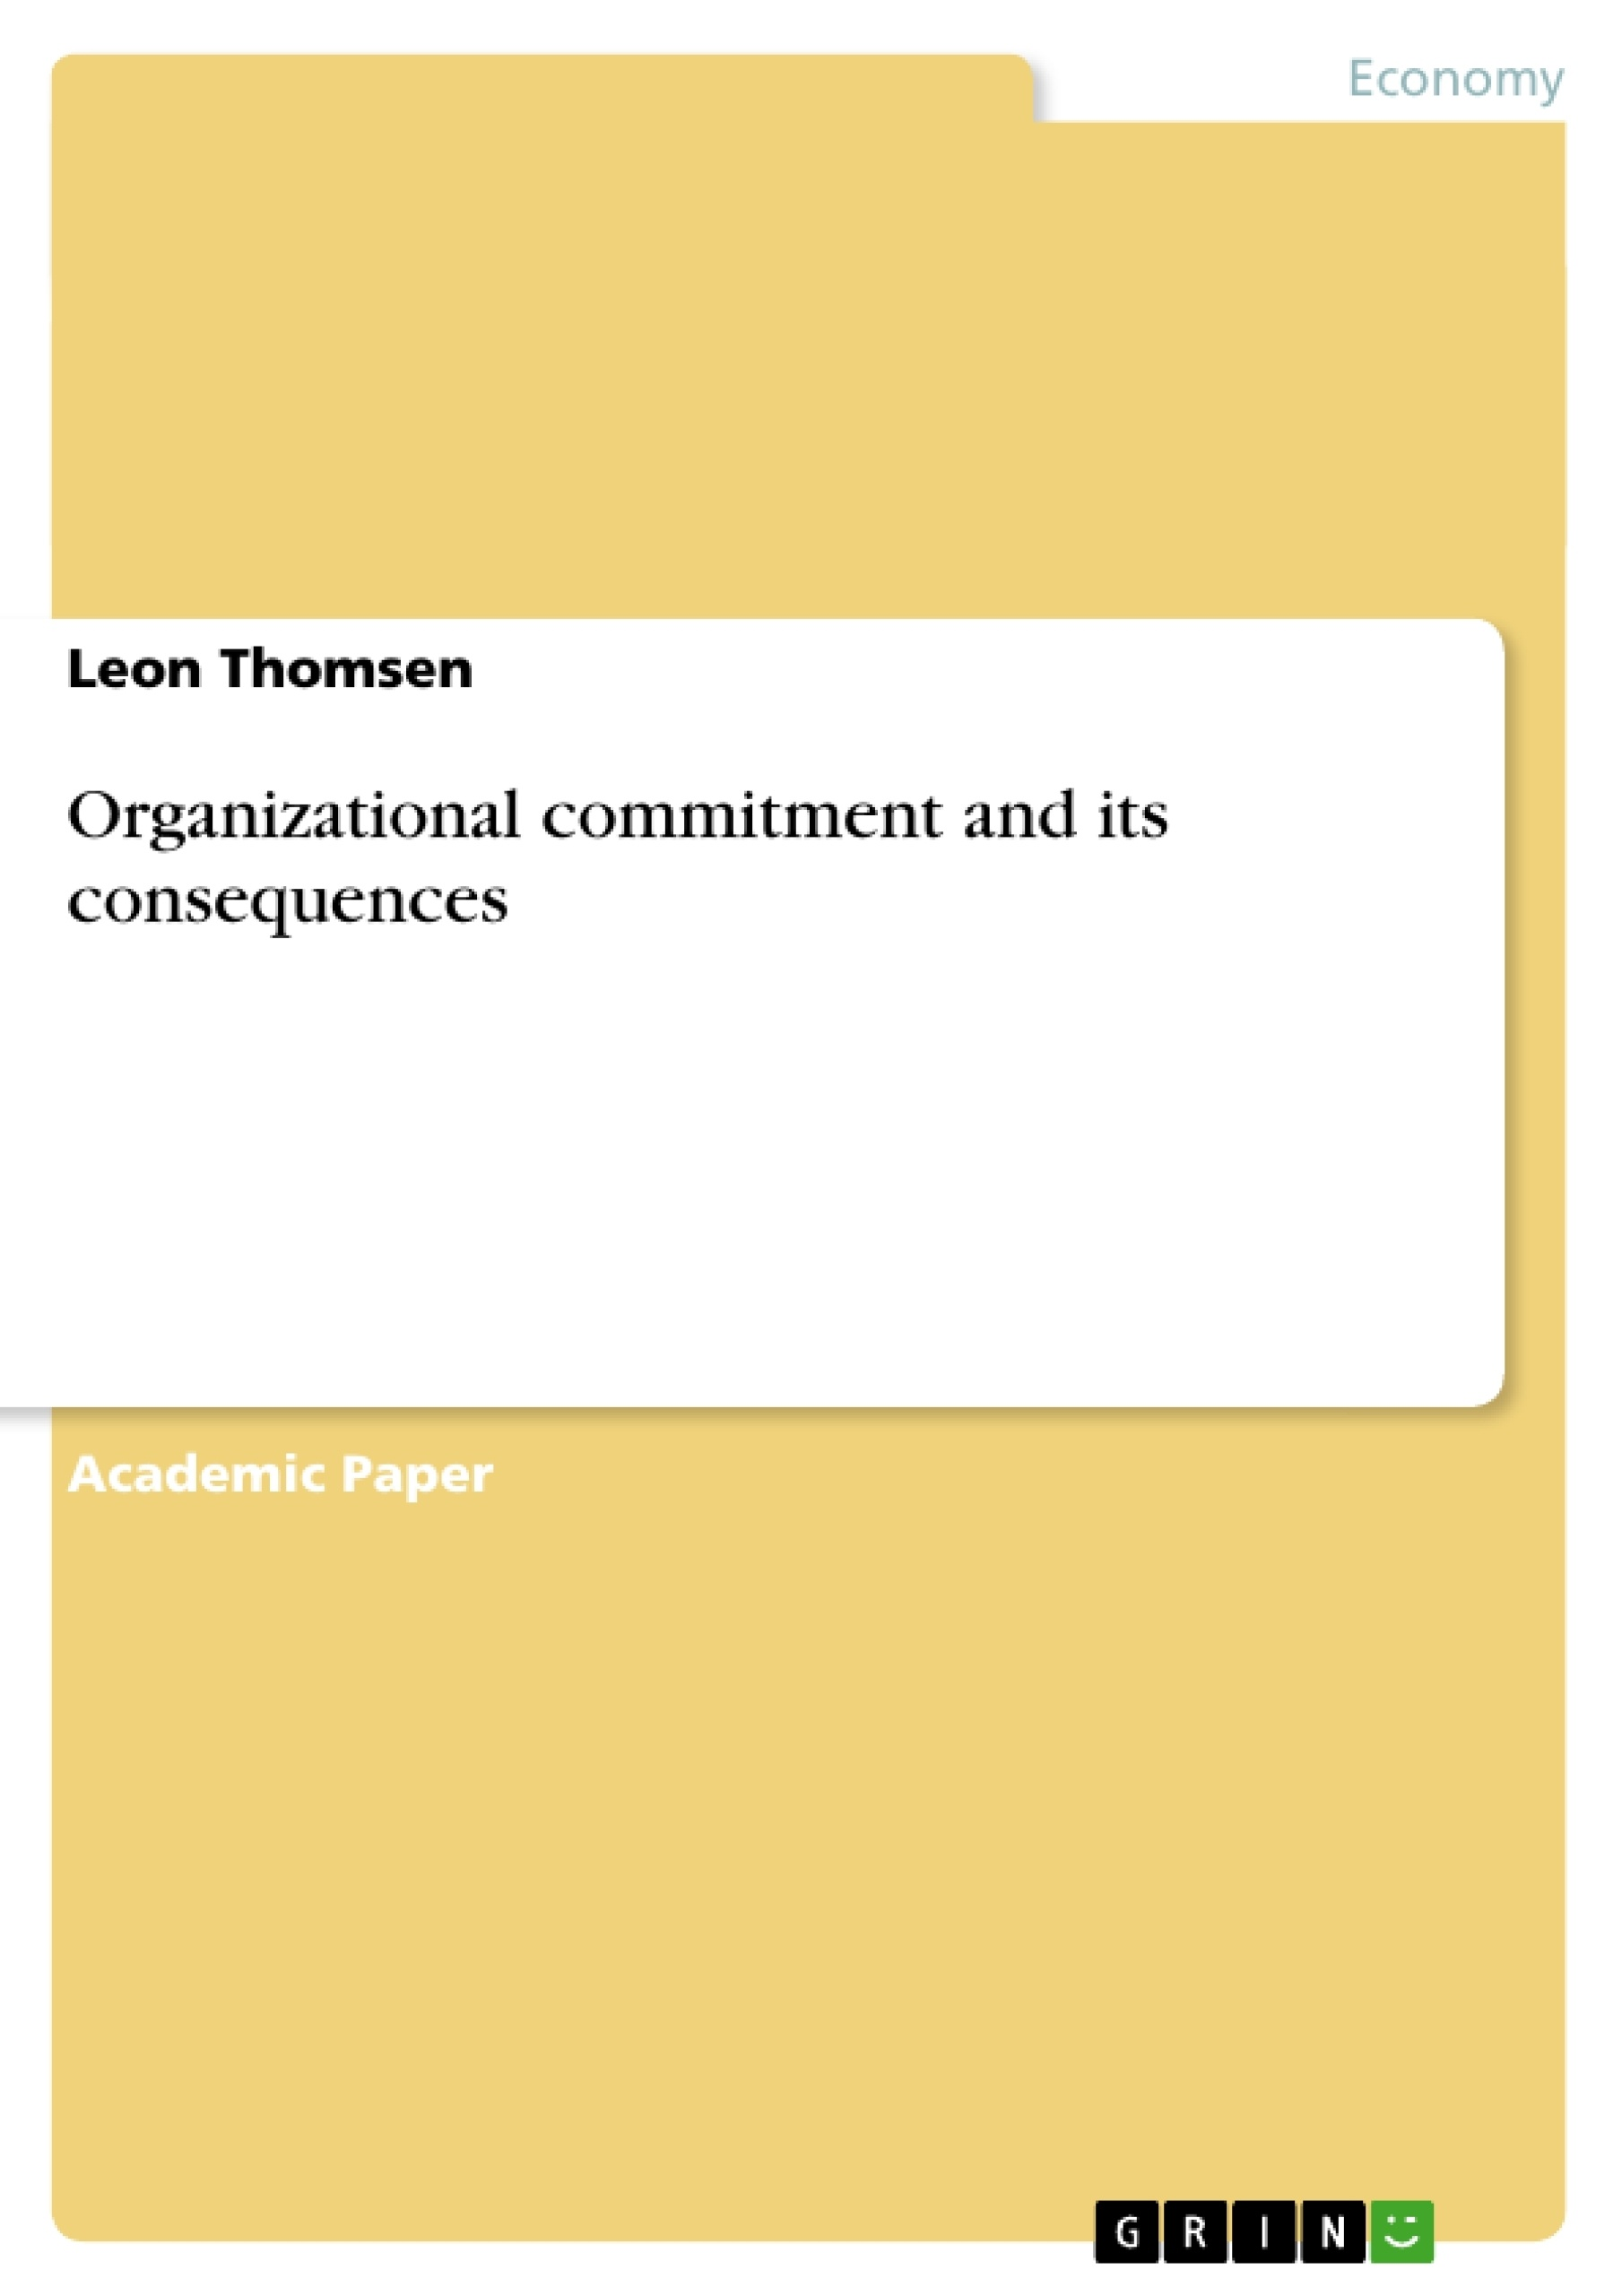 Thesis on organizational commitment